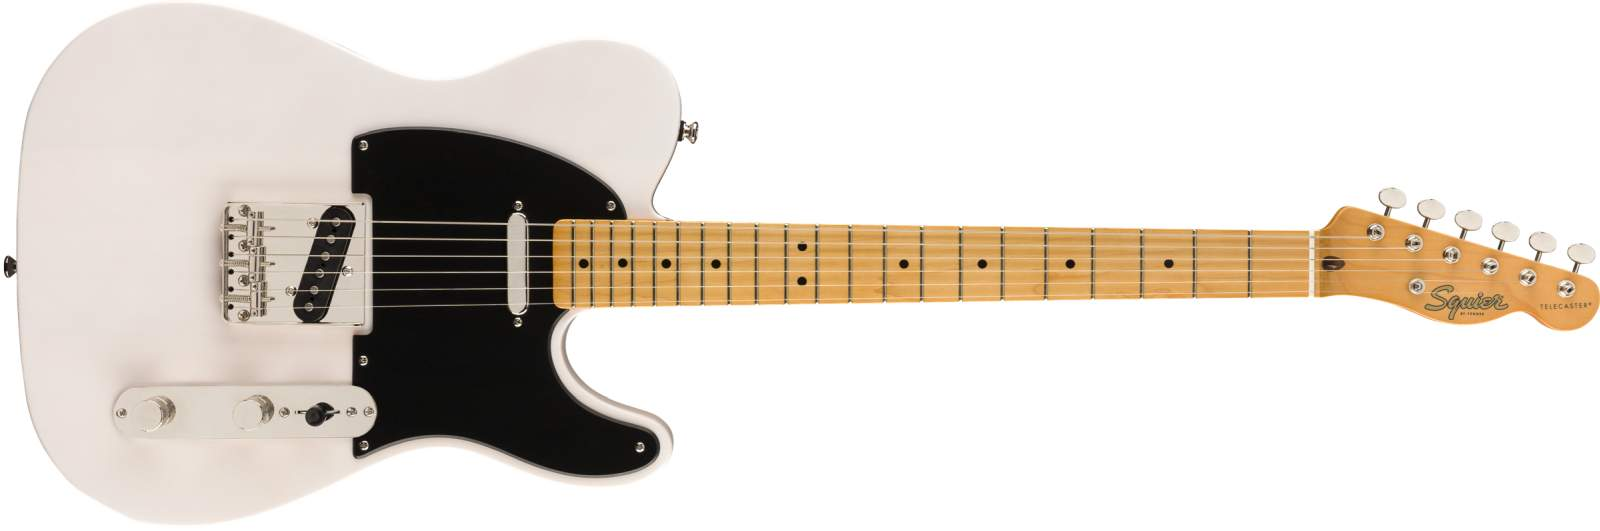 Squier Classic Vibe 50s Telecaster MN WBL